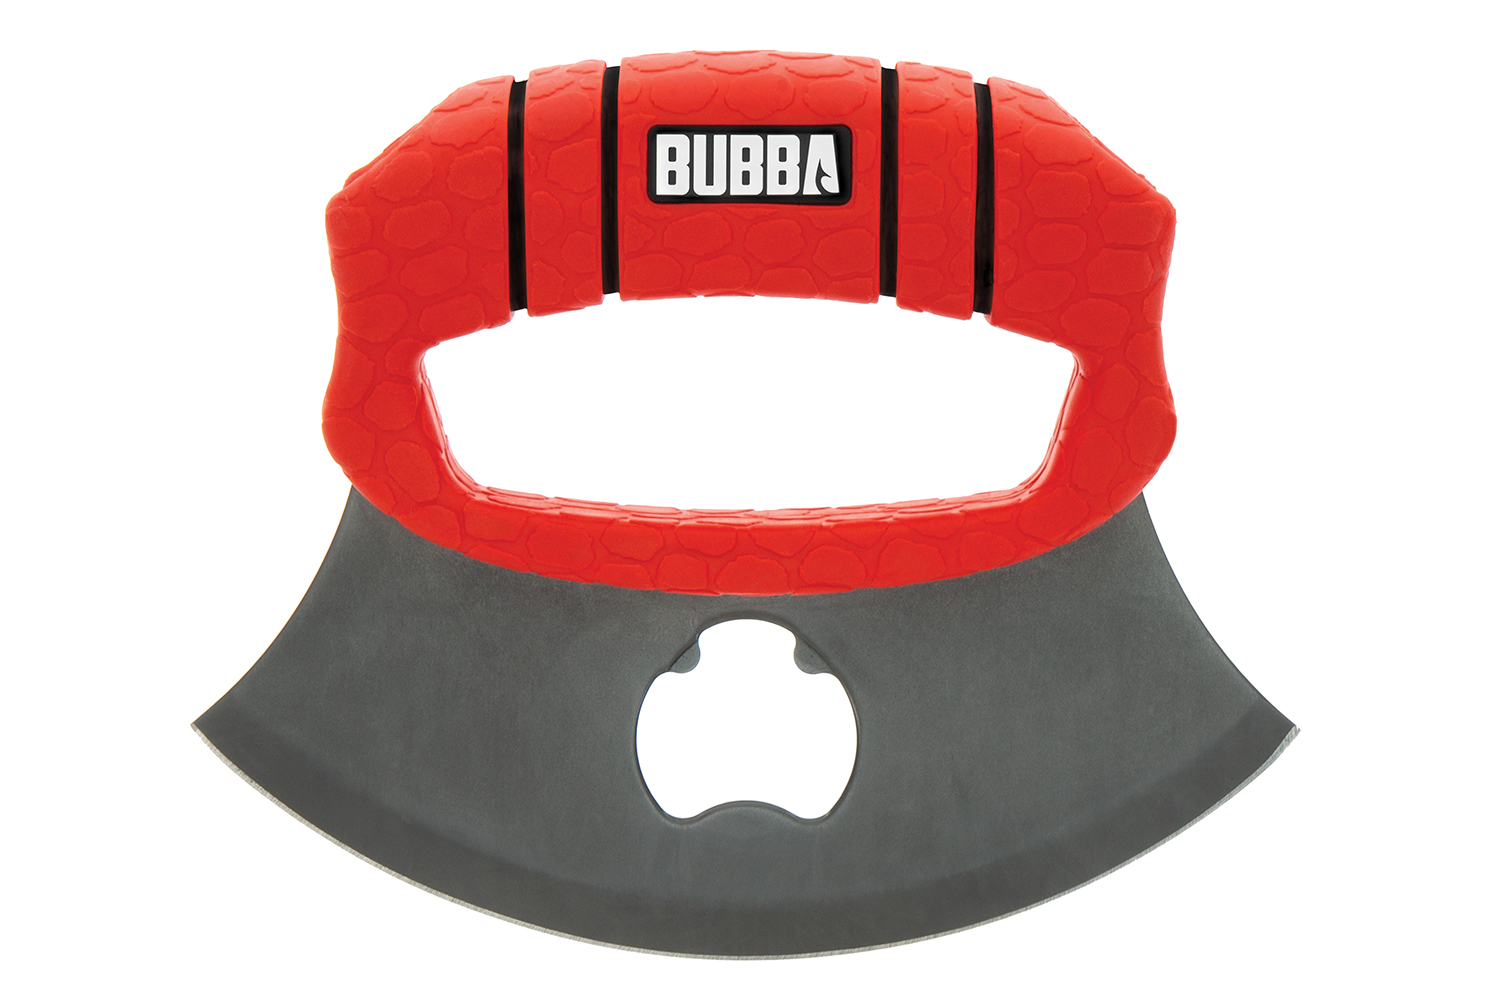 Fishing Gear: Bubba Ulu Knife